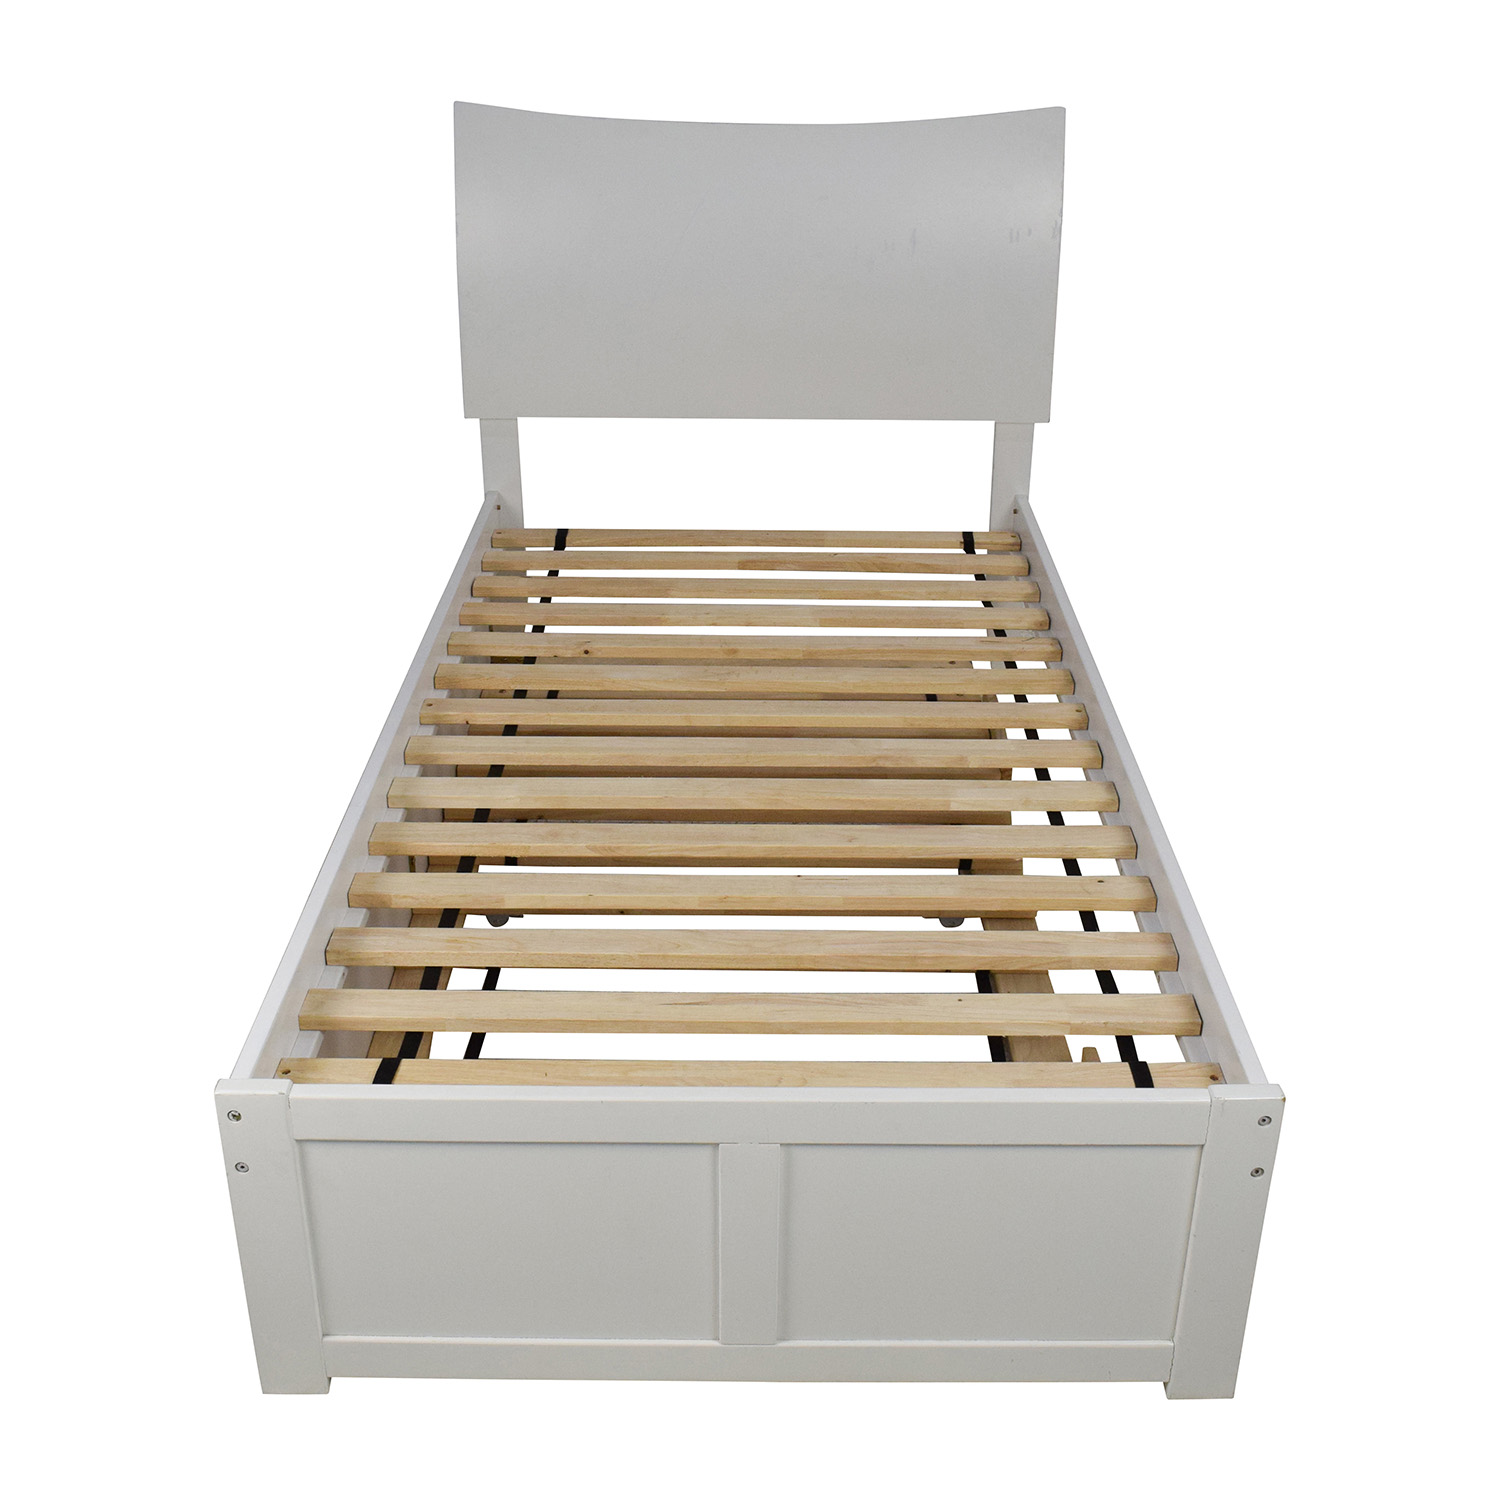 Atlantic Furniture Urban Lifestyle Soho Twin Bed with Trundle / Bed Frames